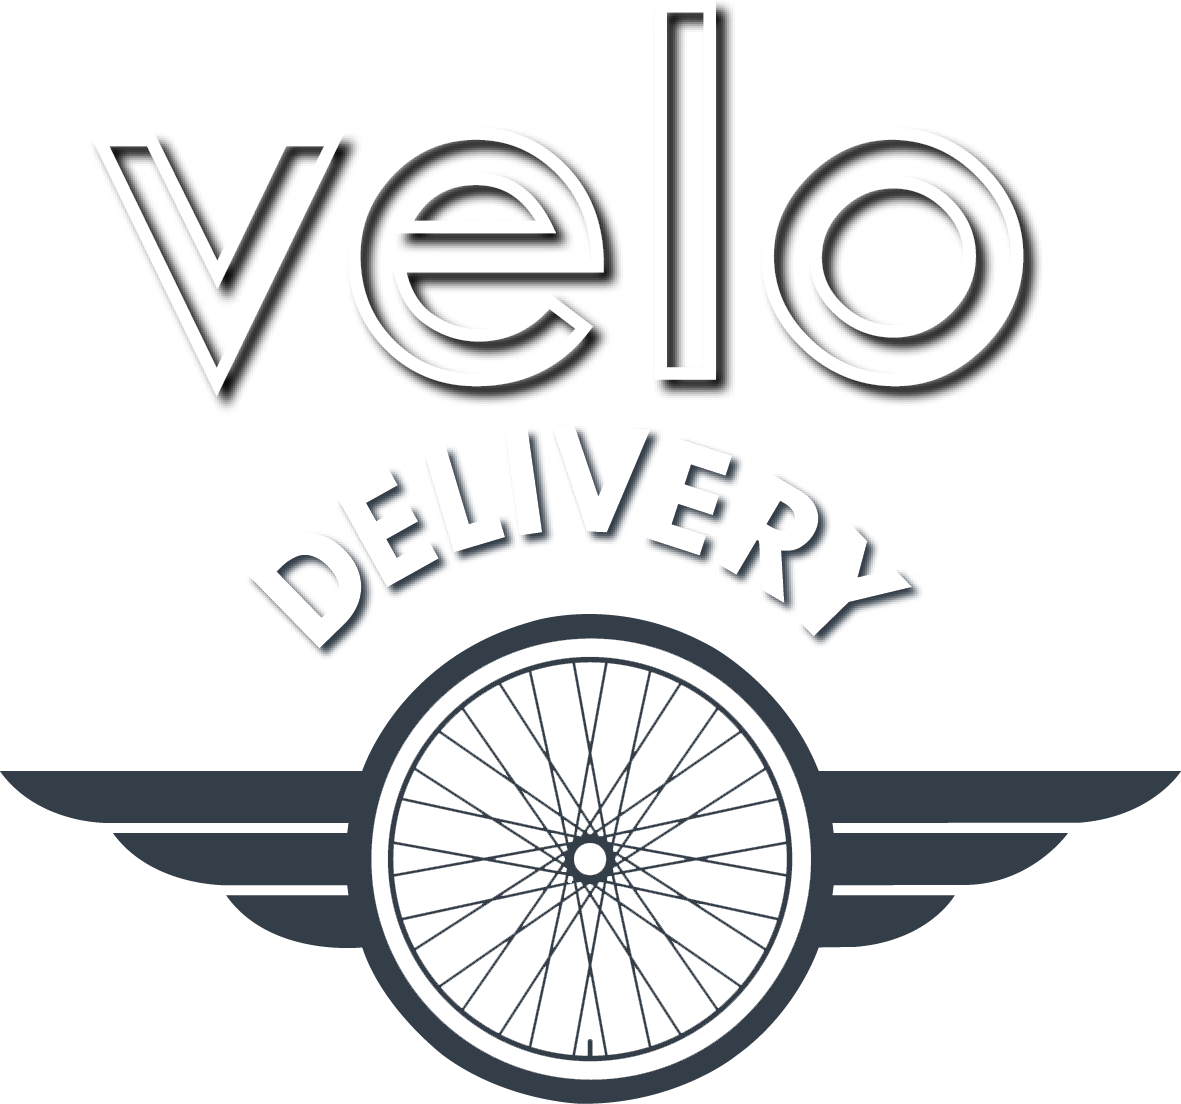 Velo Delivery